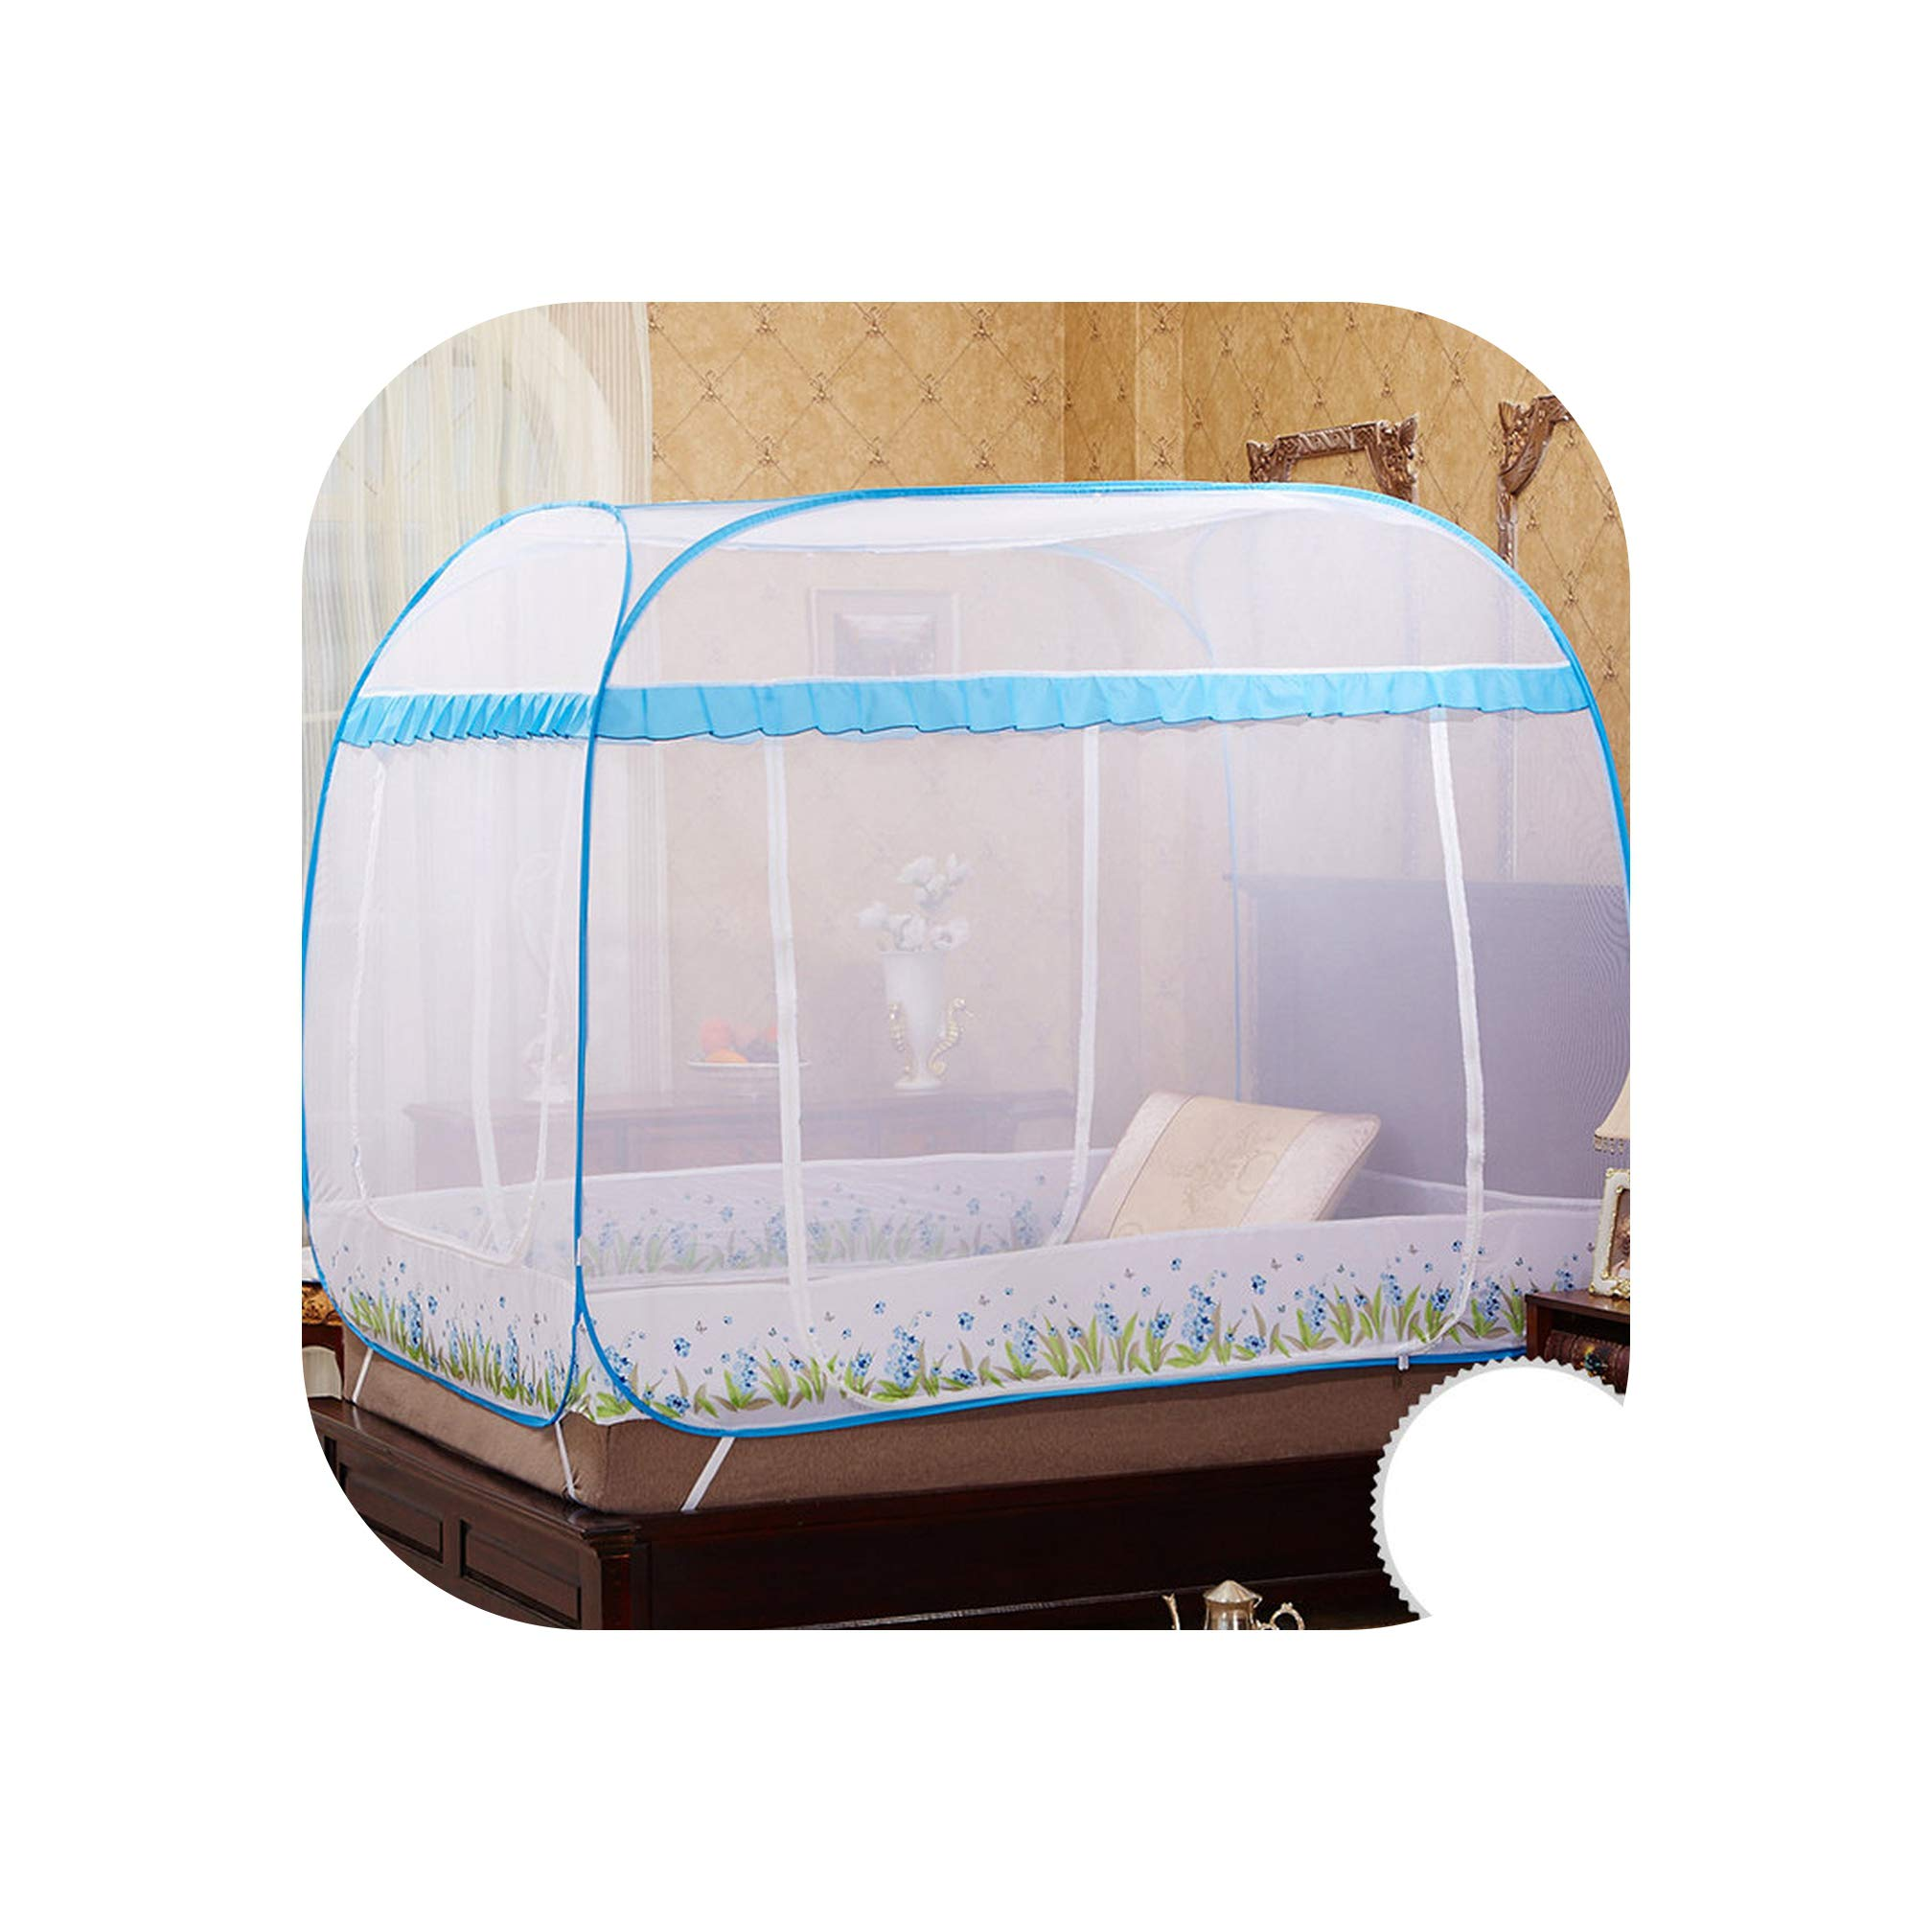 Folding Portable Mosquito Nets Quadrate Mosquito Net for Double Bed Mosquito Net Lace Blue and Purple Bed Canopies hu die LAN LAN 1.8m (6 feet) Bed